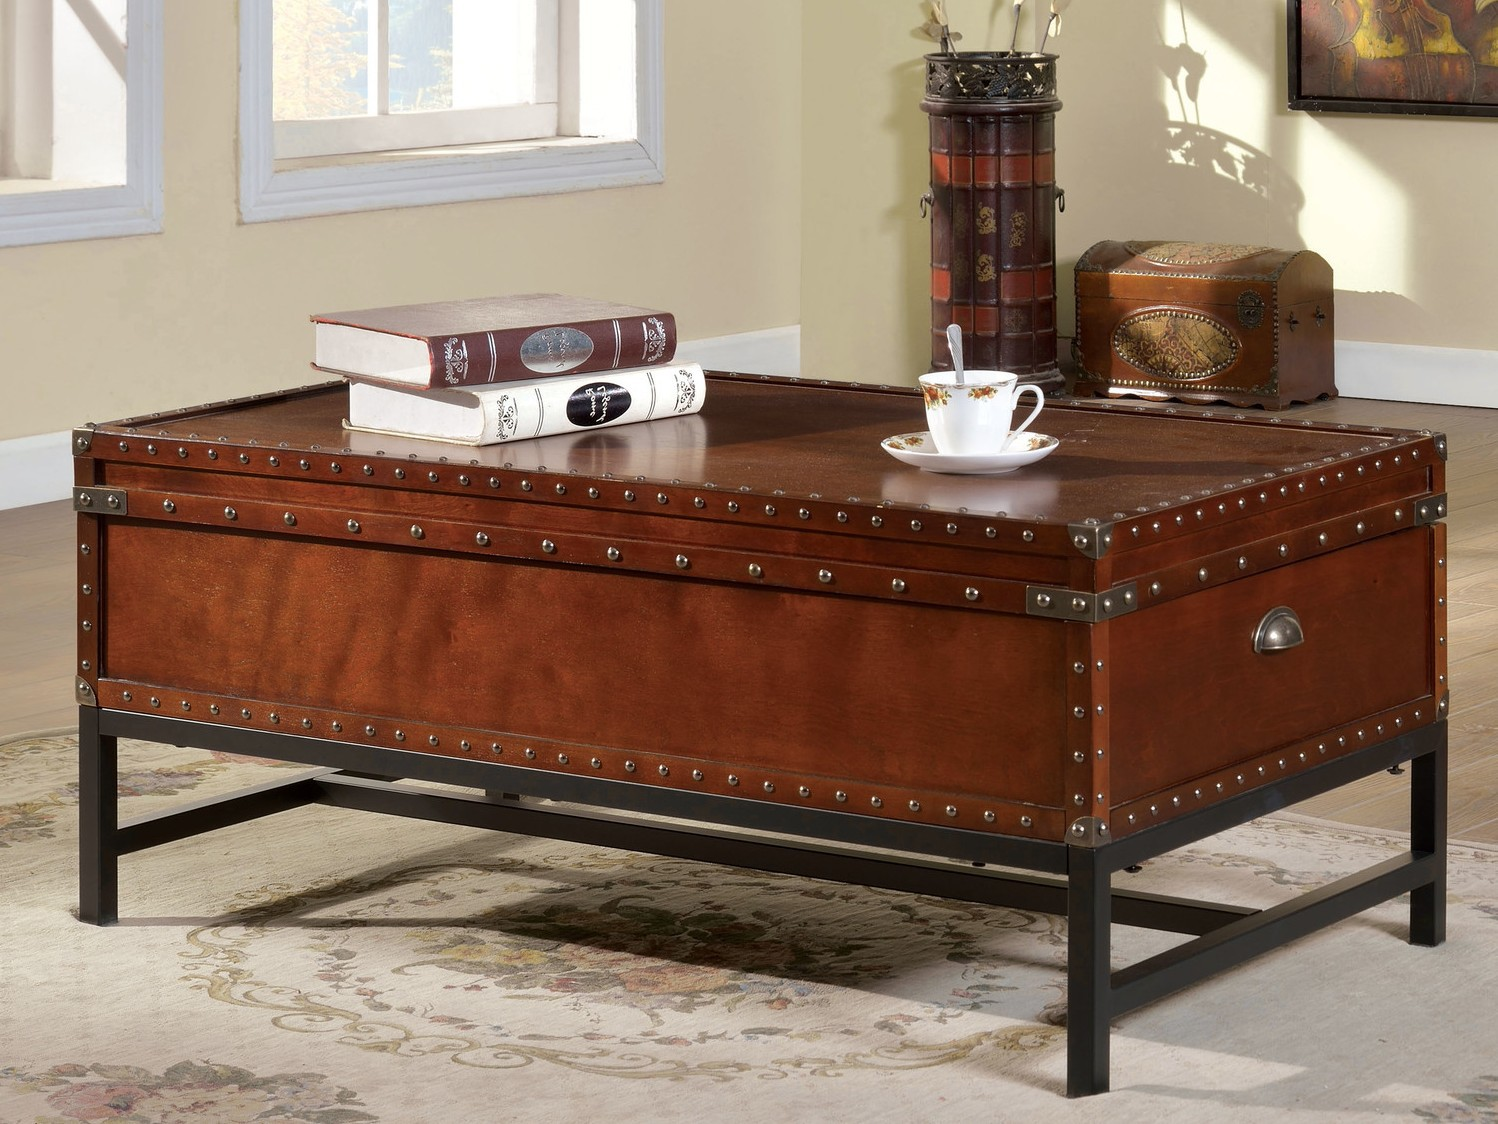 industrial coffee table design images photos pictures